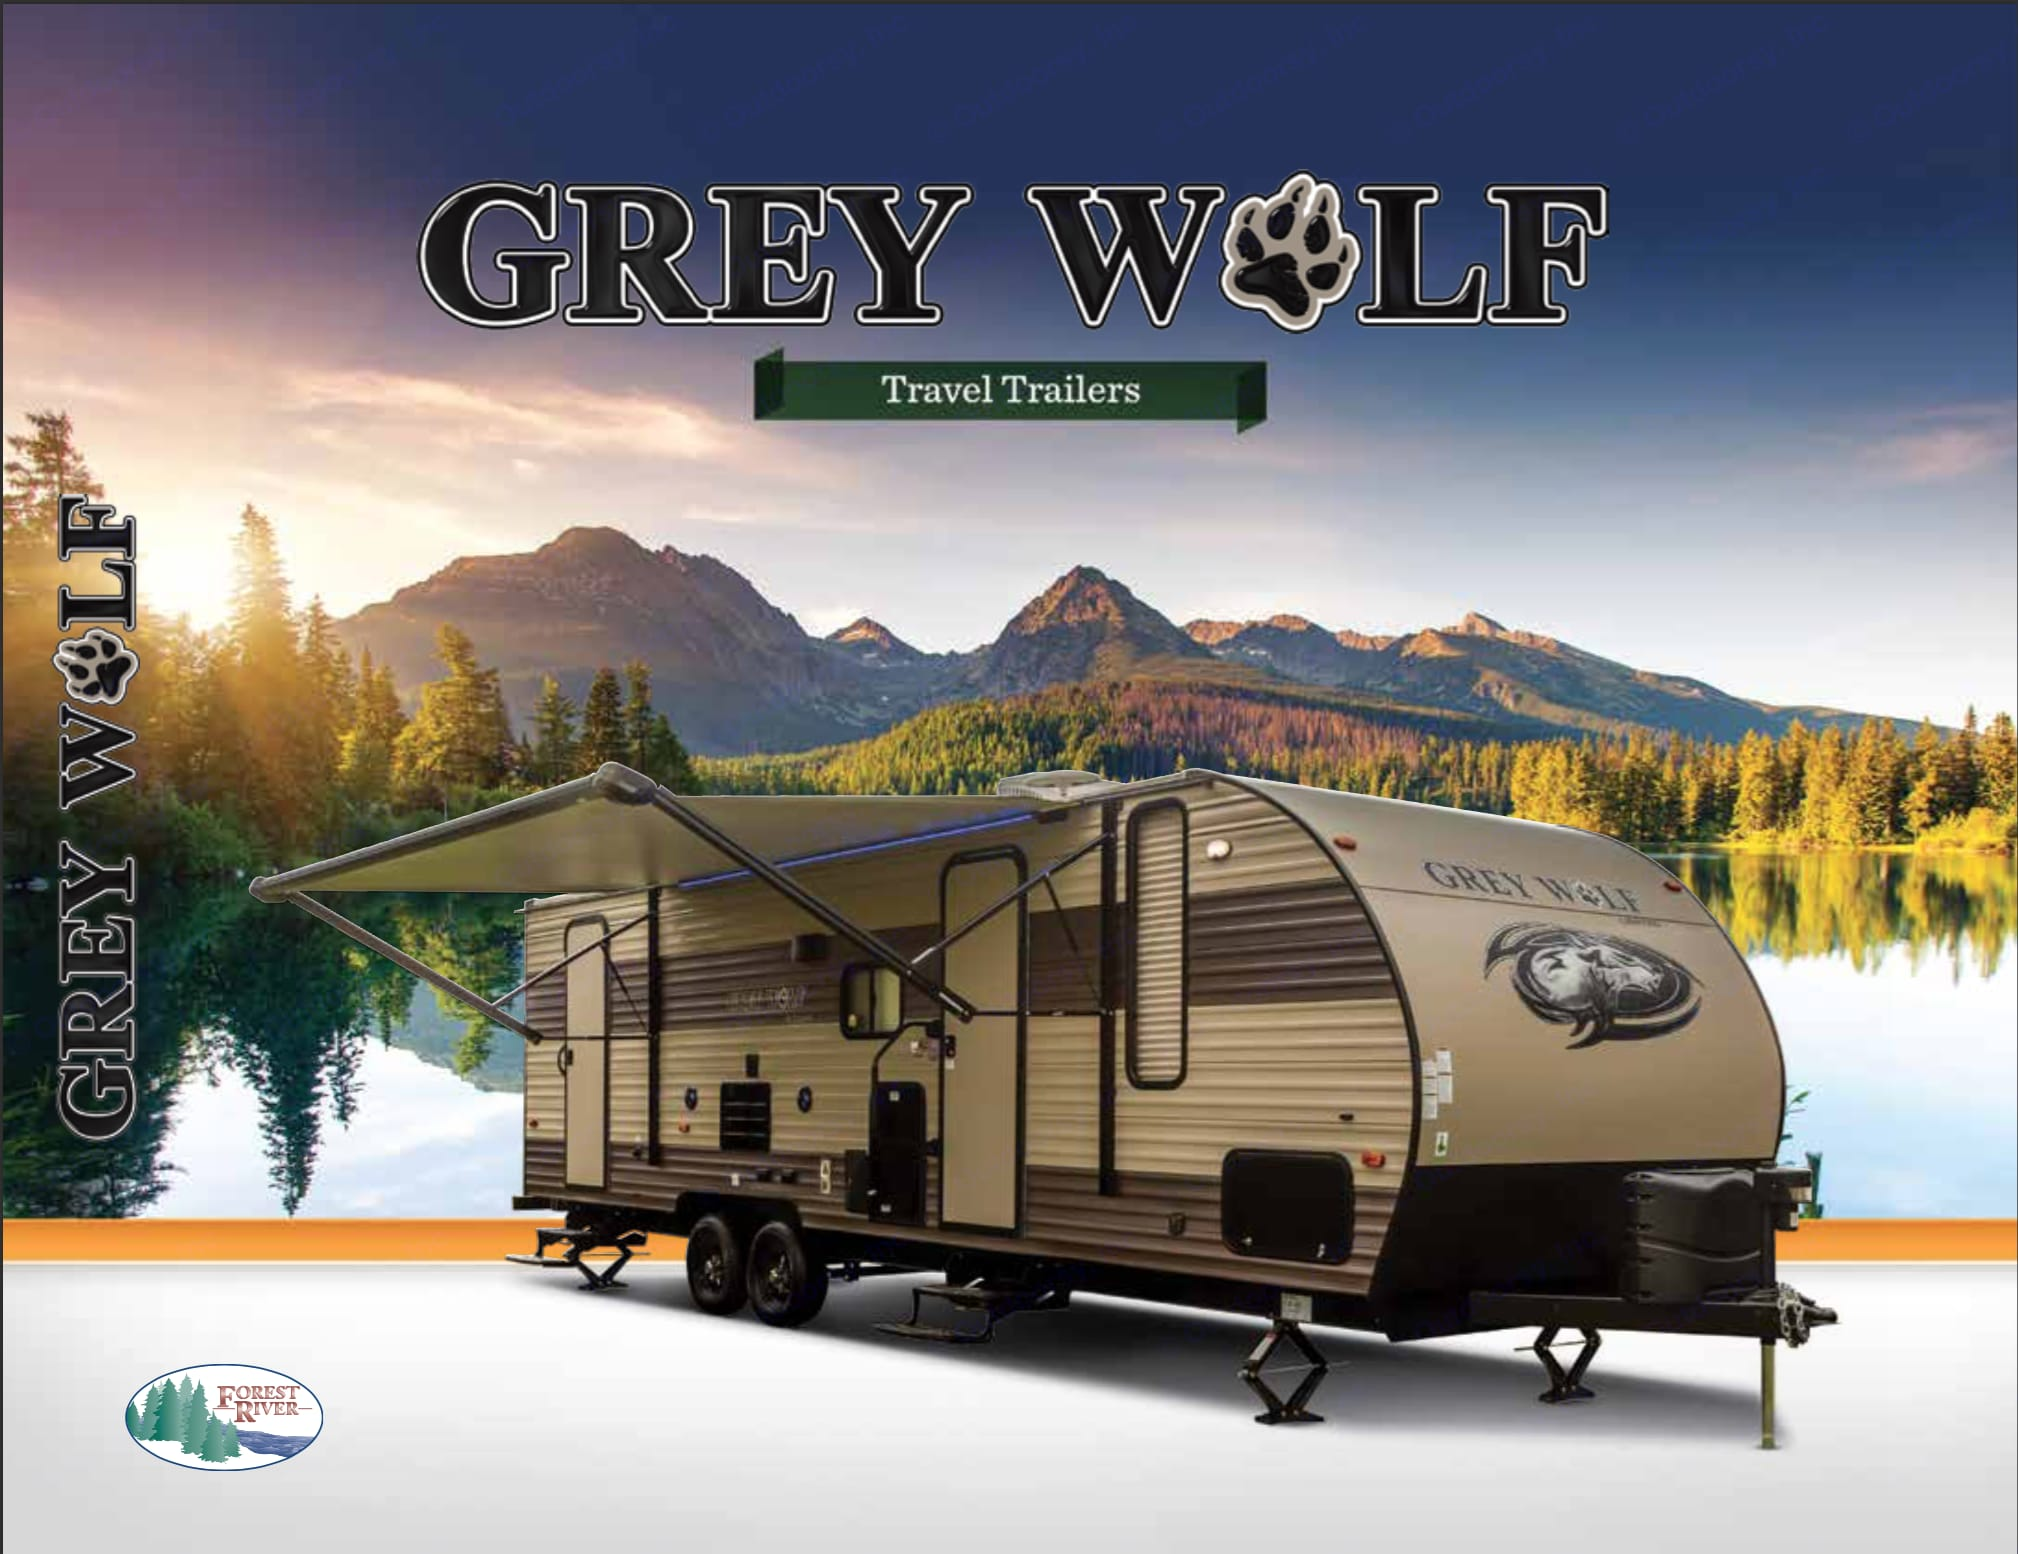 2017 FOREST RIVER GREY WOLF LIMITED EDITION. Forest River Cherokee Grey Wolf 2017